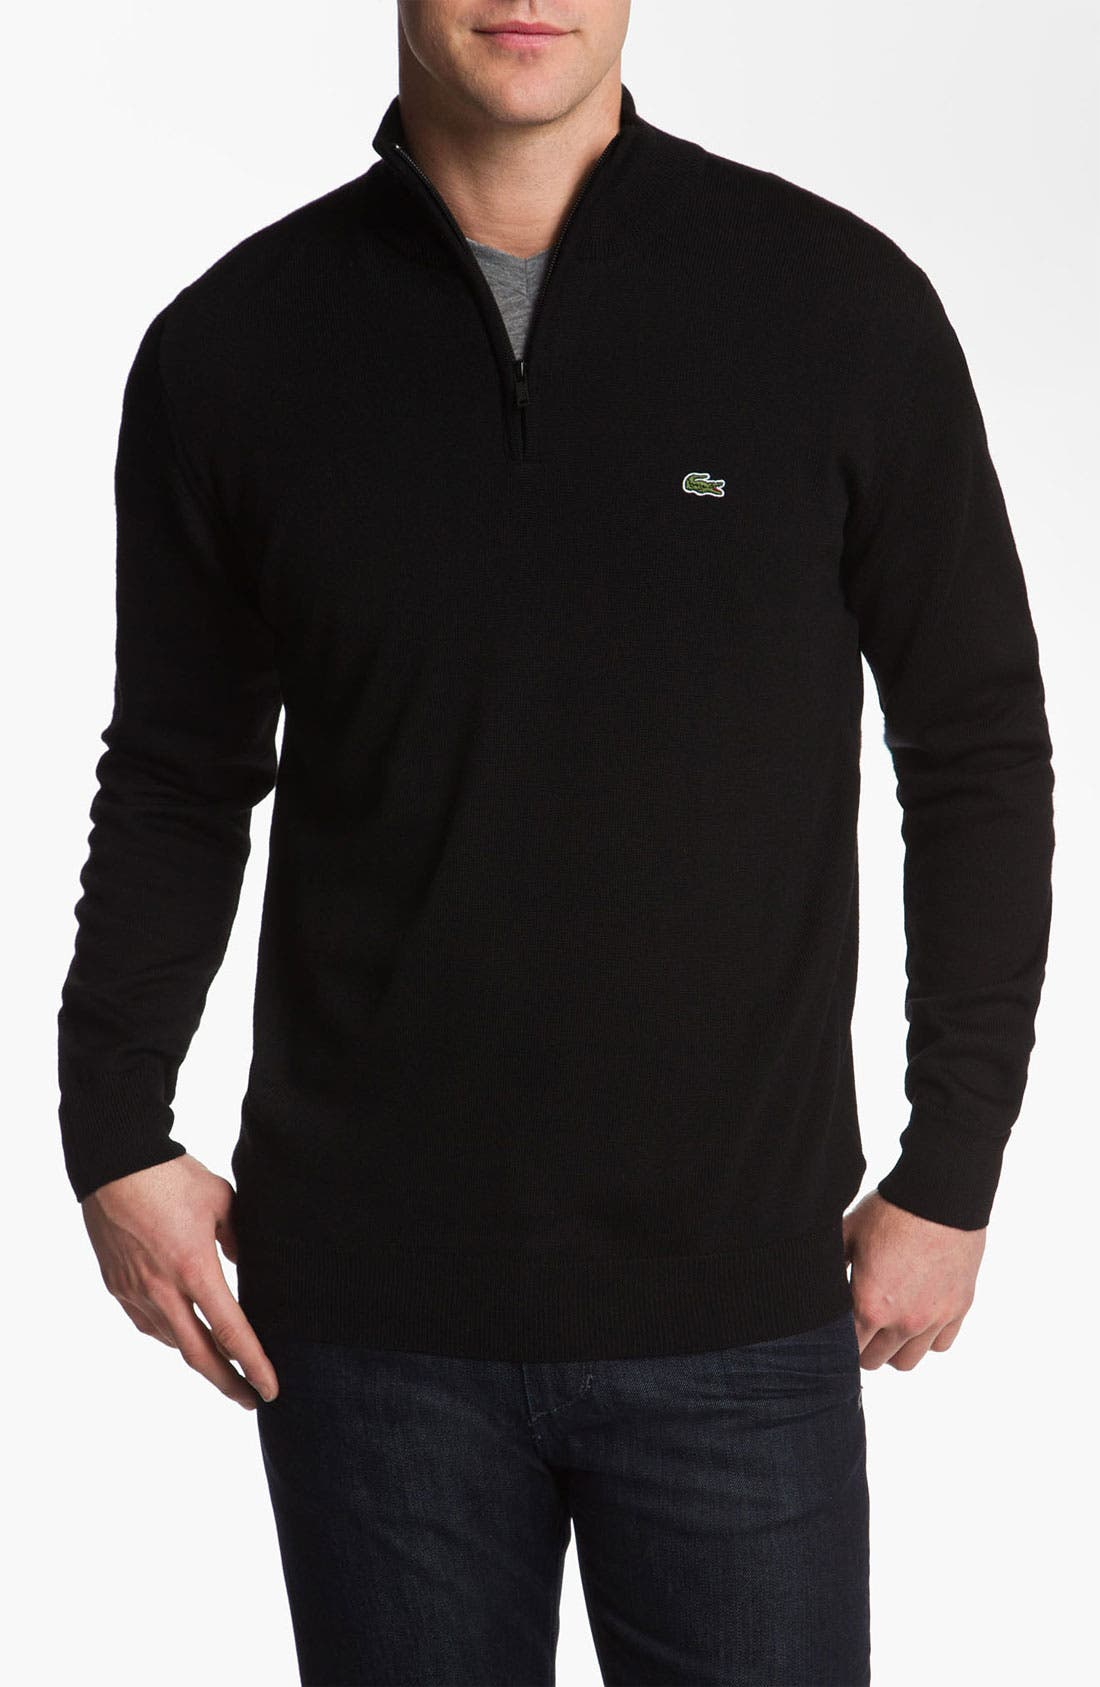 Alternate Image 1 Selected - Lacoste Lambswool Mock Neck Sweater